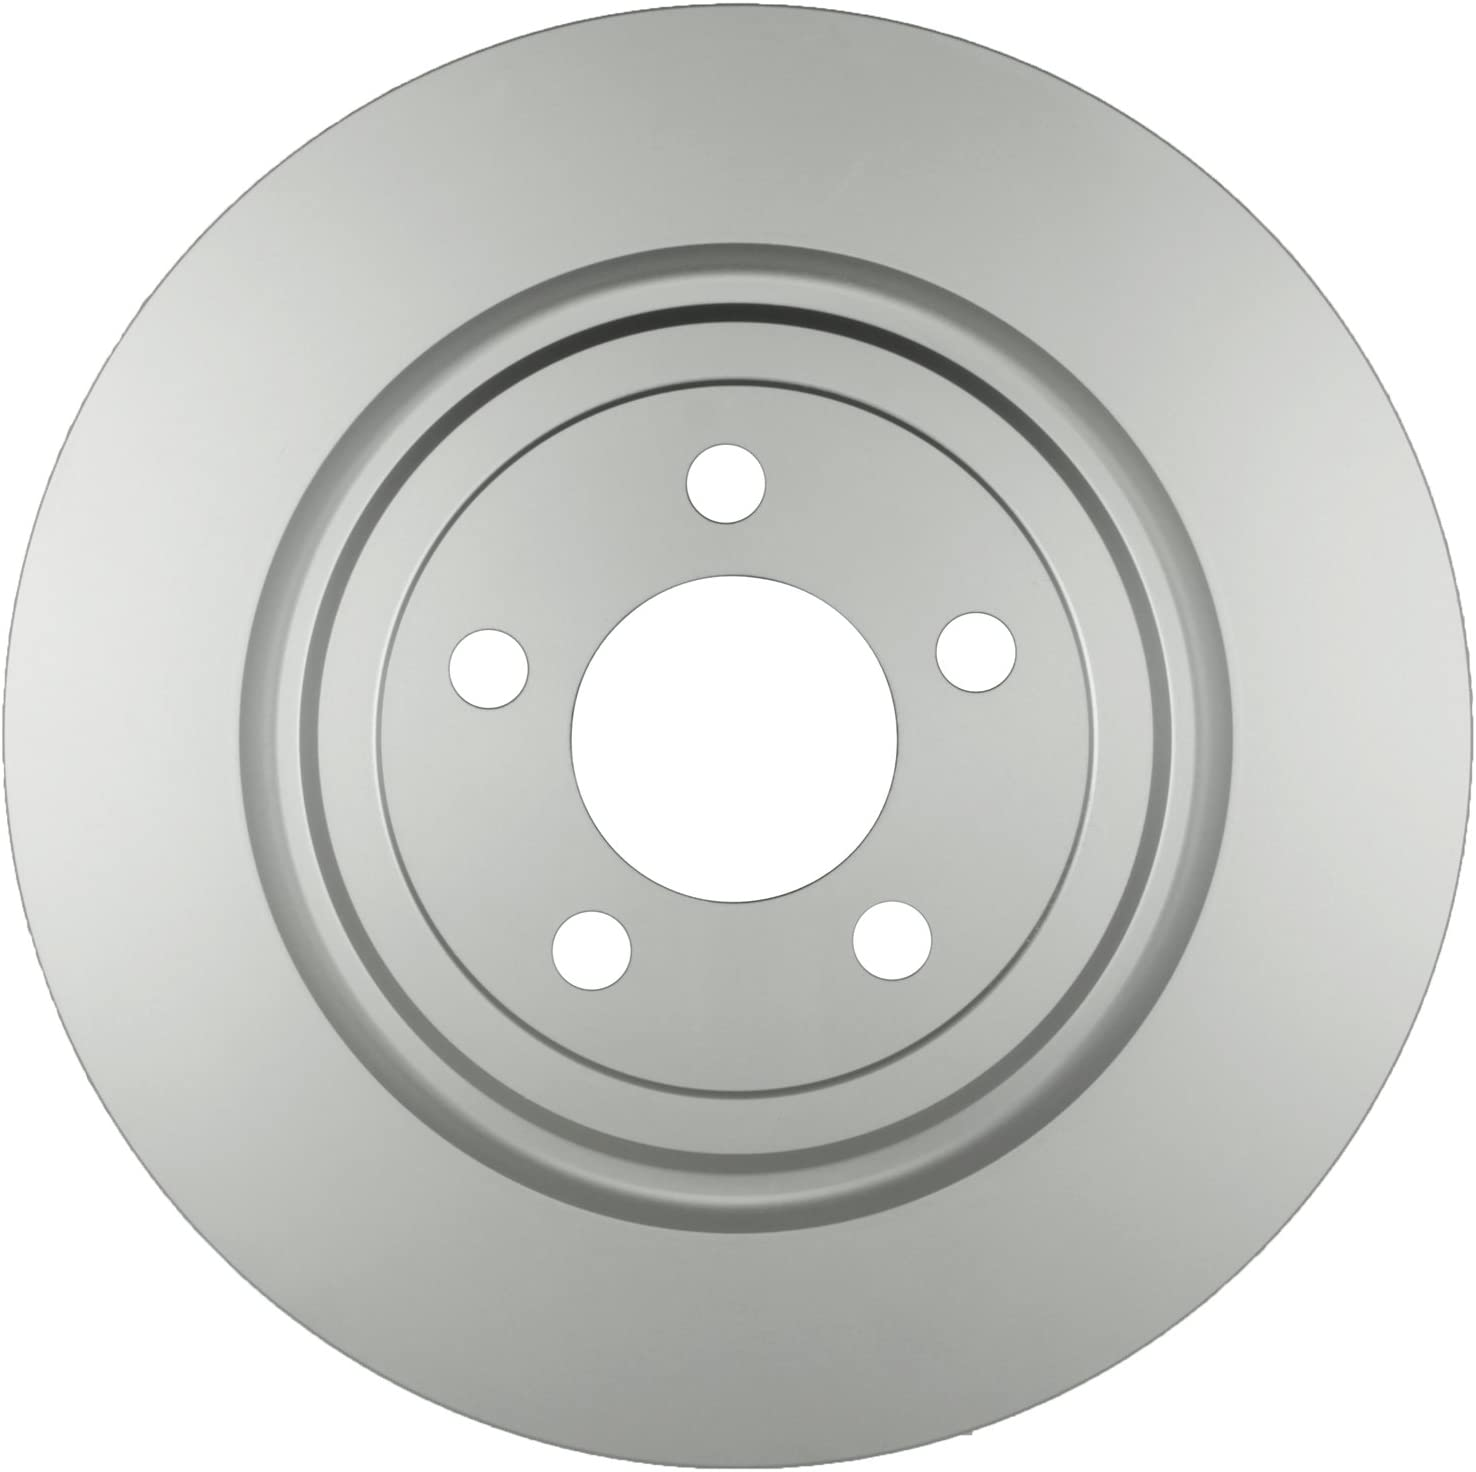 Bosch 16010247 QuietCast Premium Disc Brake Rotor For Chrysler 2005-2013 300; Dodge 2006-2016 Charger; Rear